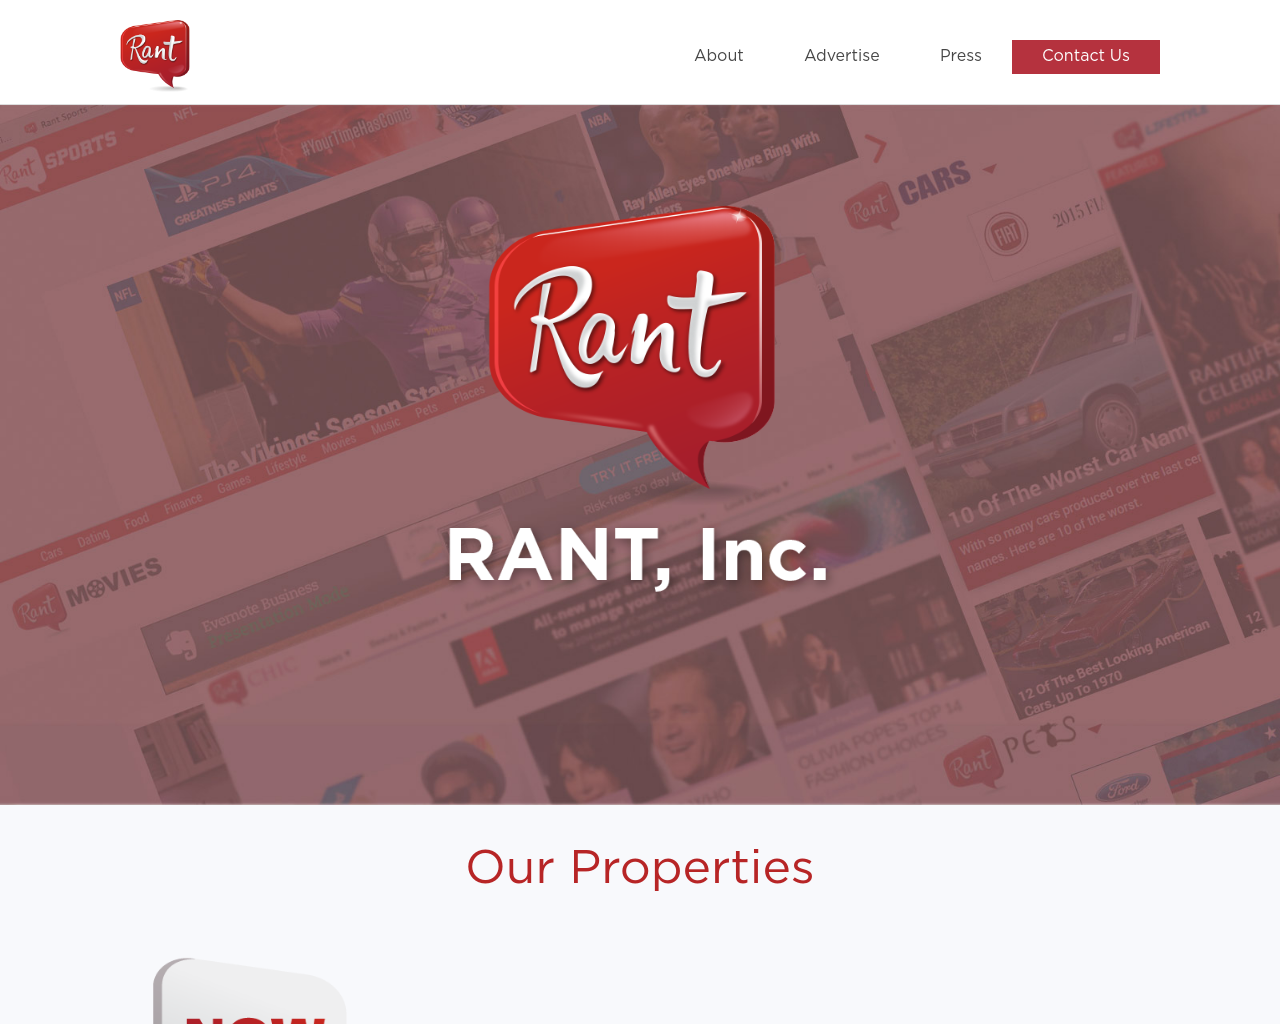 Rant-Media-Network-Advertising-Reviews-Pricing